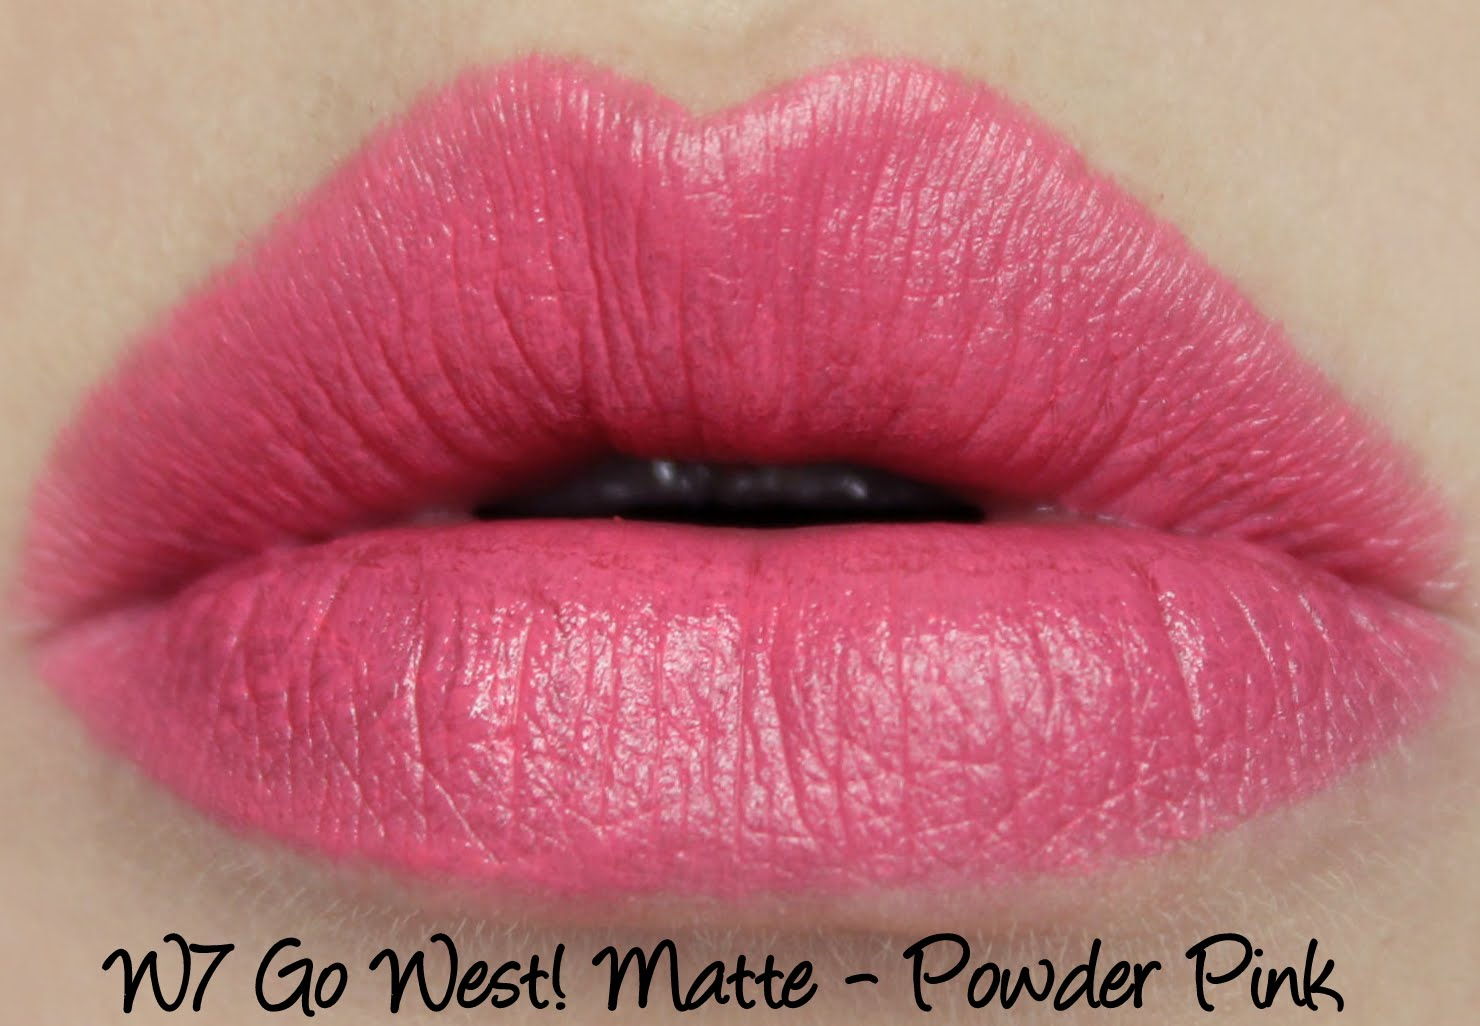 W7 Go West! Matte Lipstick - Powder Pink Swatches & Review